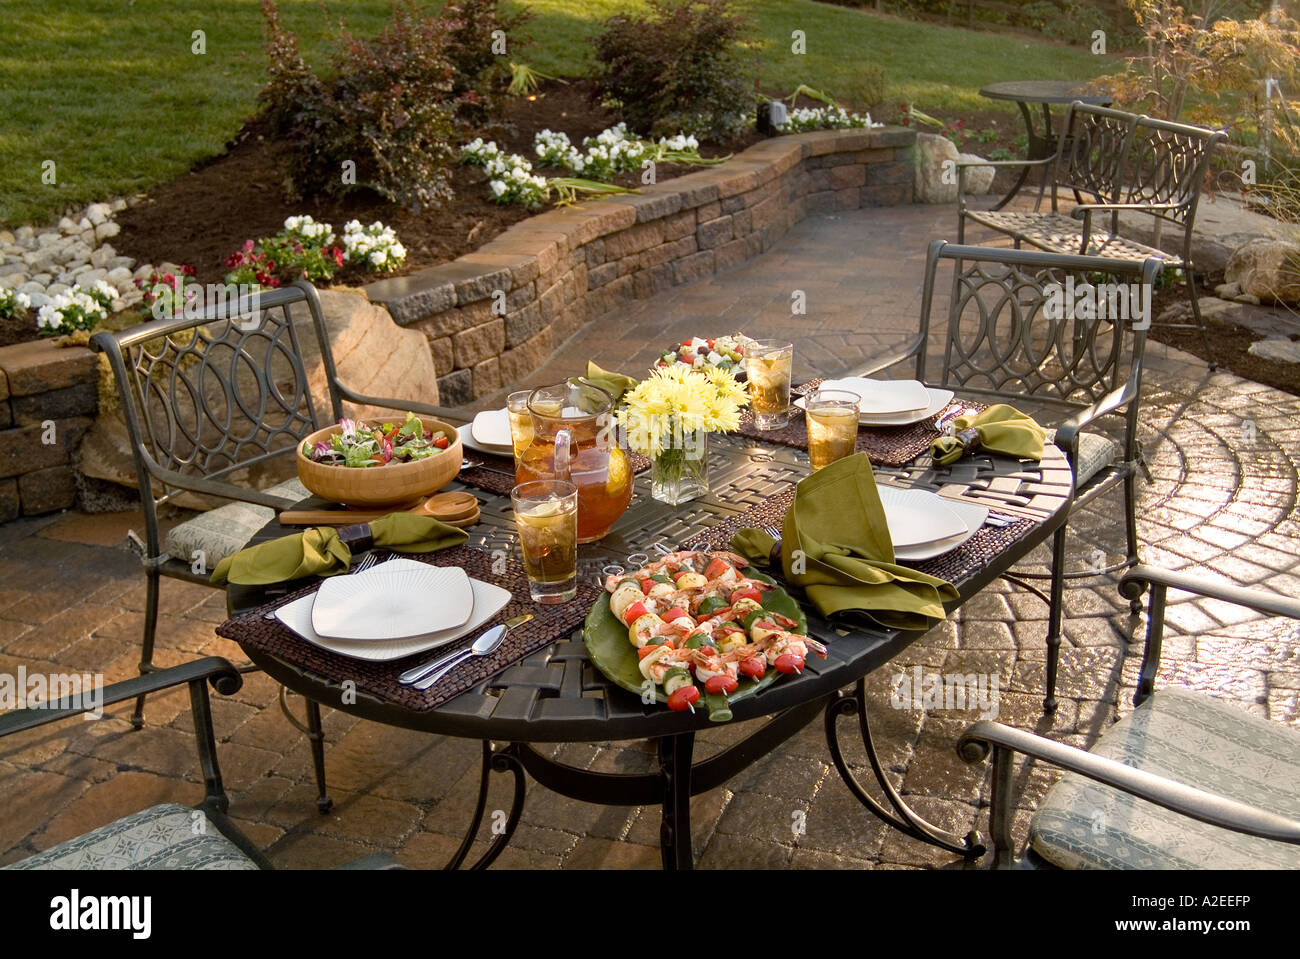 Bon Backyard Patio Deck With Table Of Food For Barbecue Party